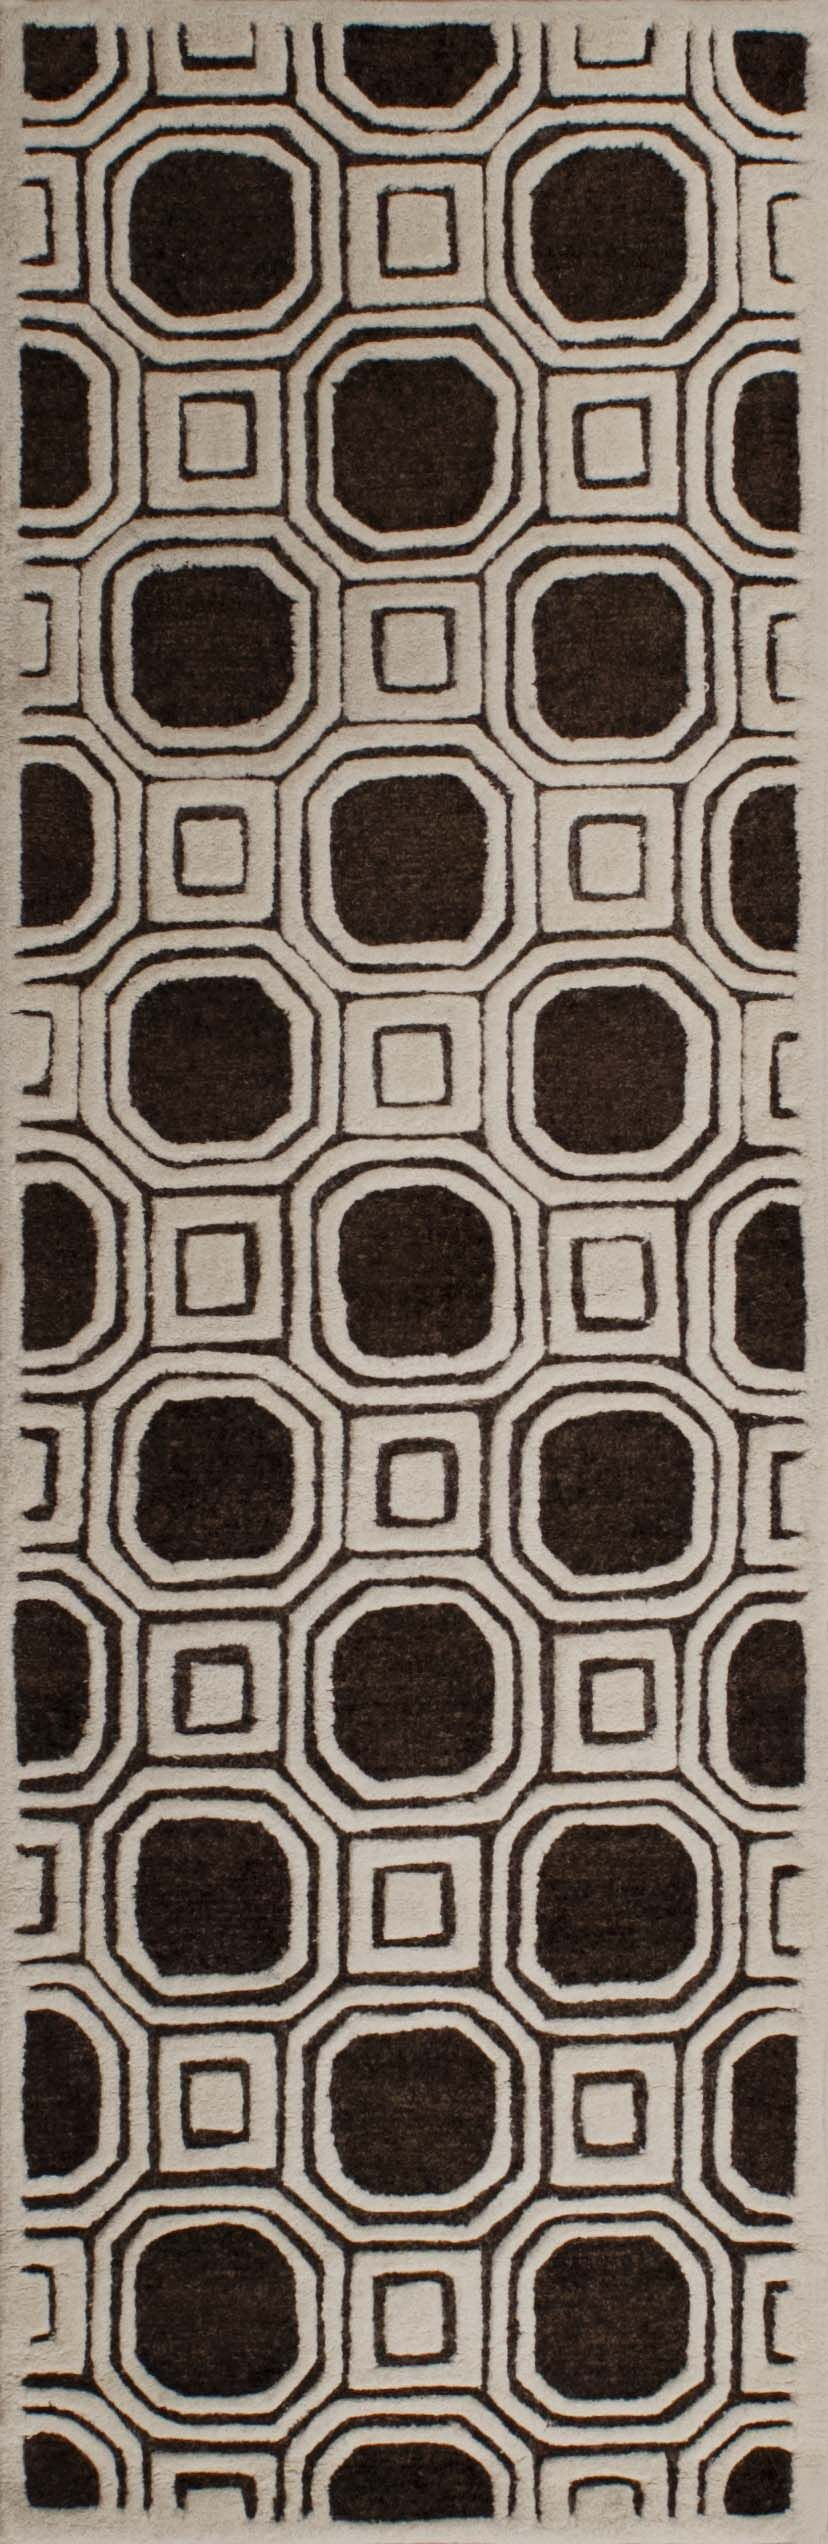 Precious Charcoal Rug Rug Size: Rectangle 5' x 8'